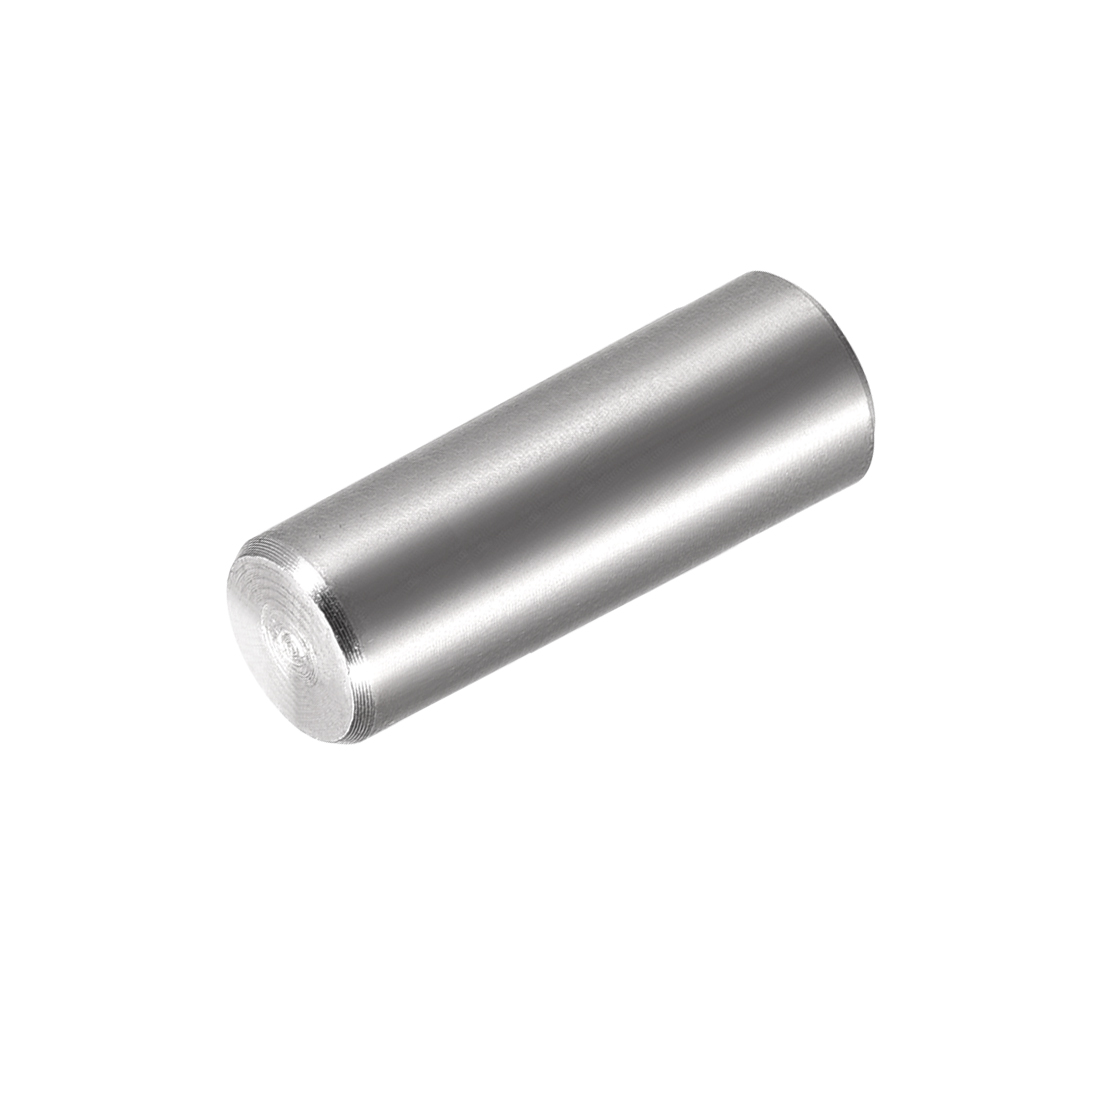 8mm x 25mm 1:50 Taper Pin 304 Stainless Steel Shelf Support Pin Fasten Elements